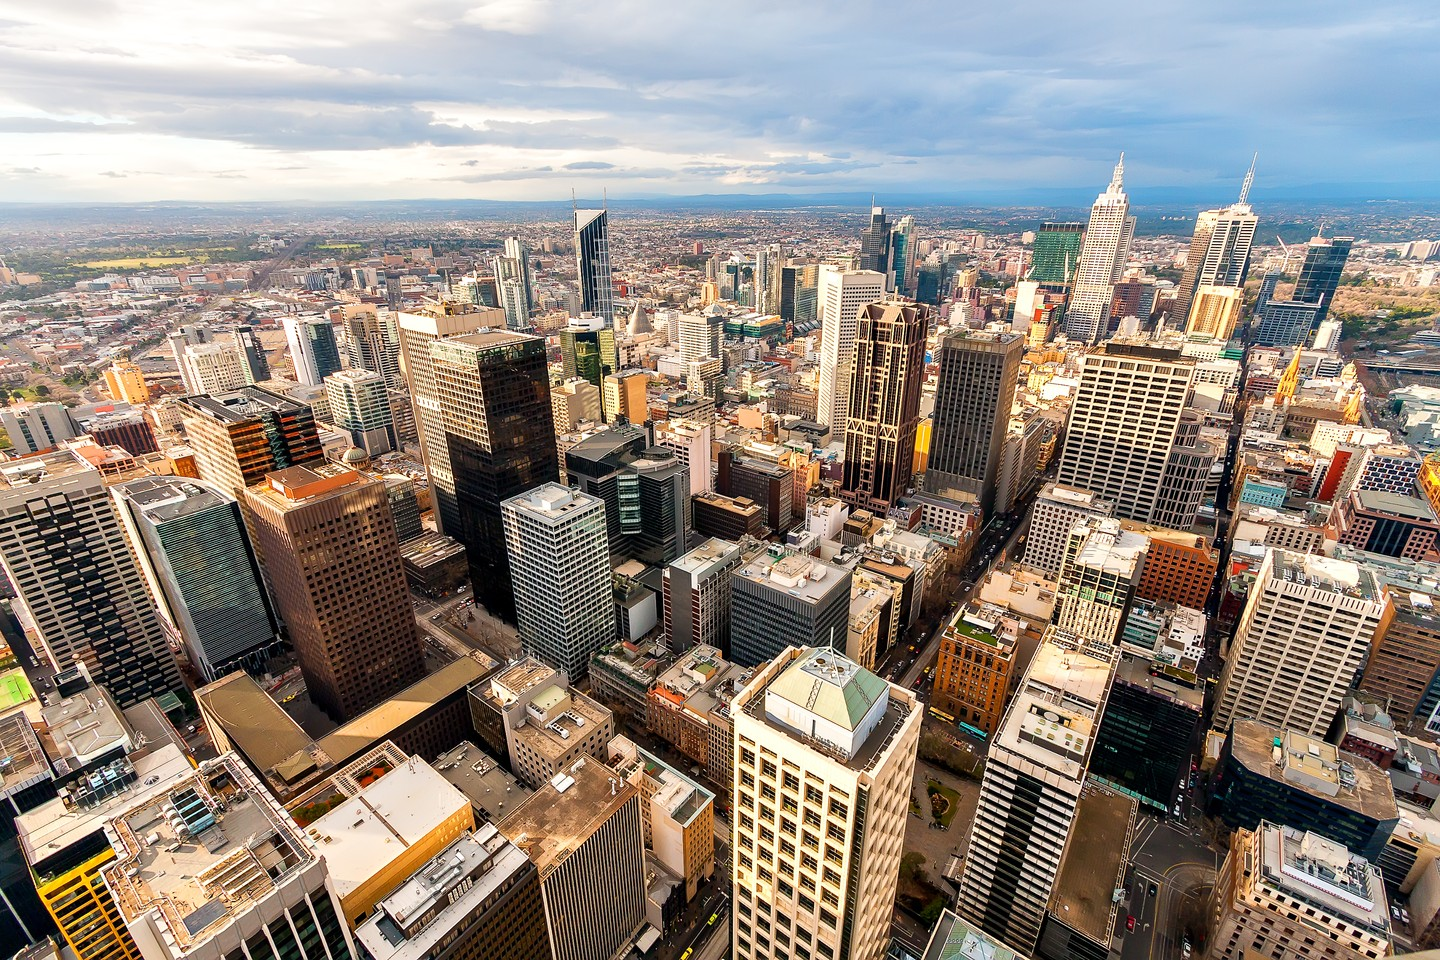 Skyscrapers in Melbourne, Australia